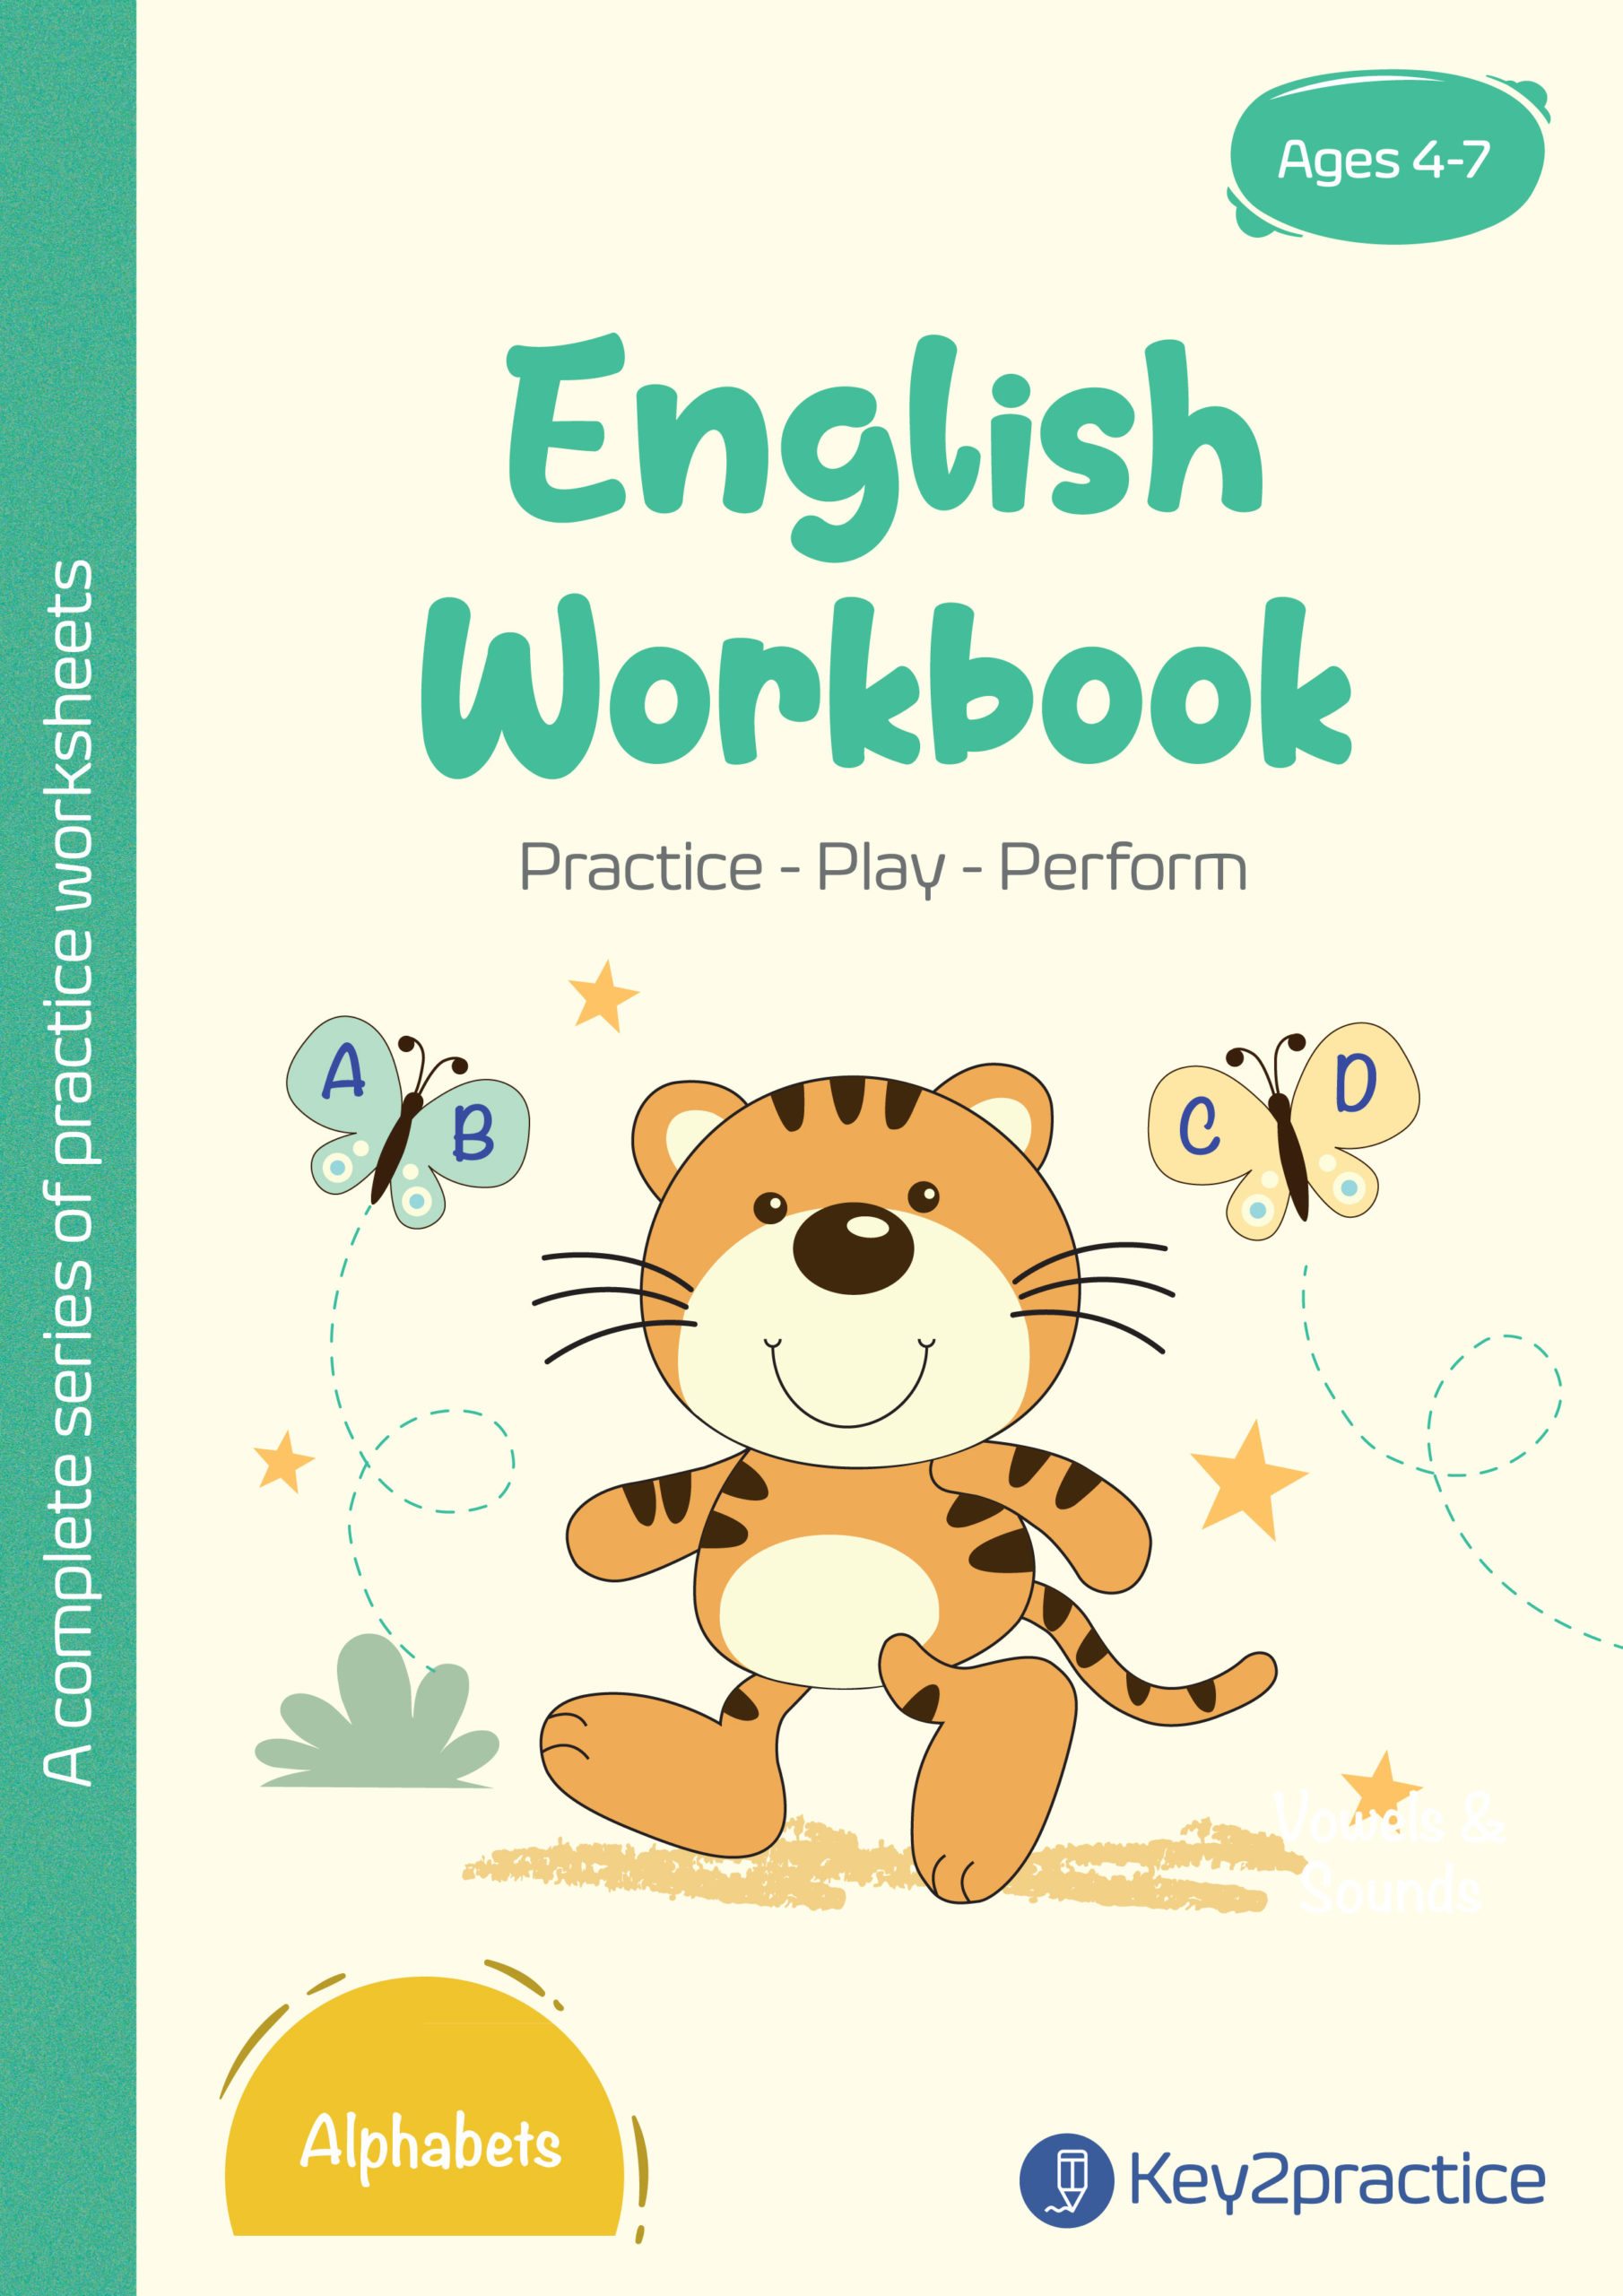 medium resolution of Worksheets on Alphabets Pre-primary - key2practice Workbooks